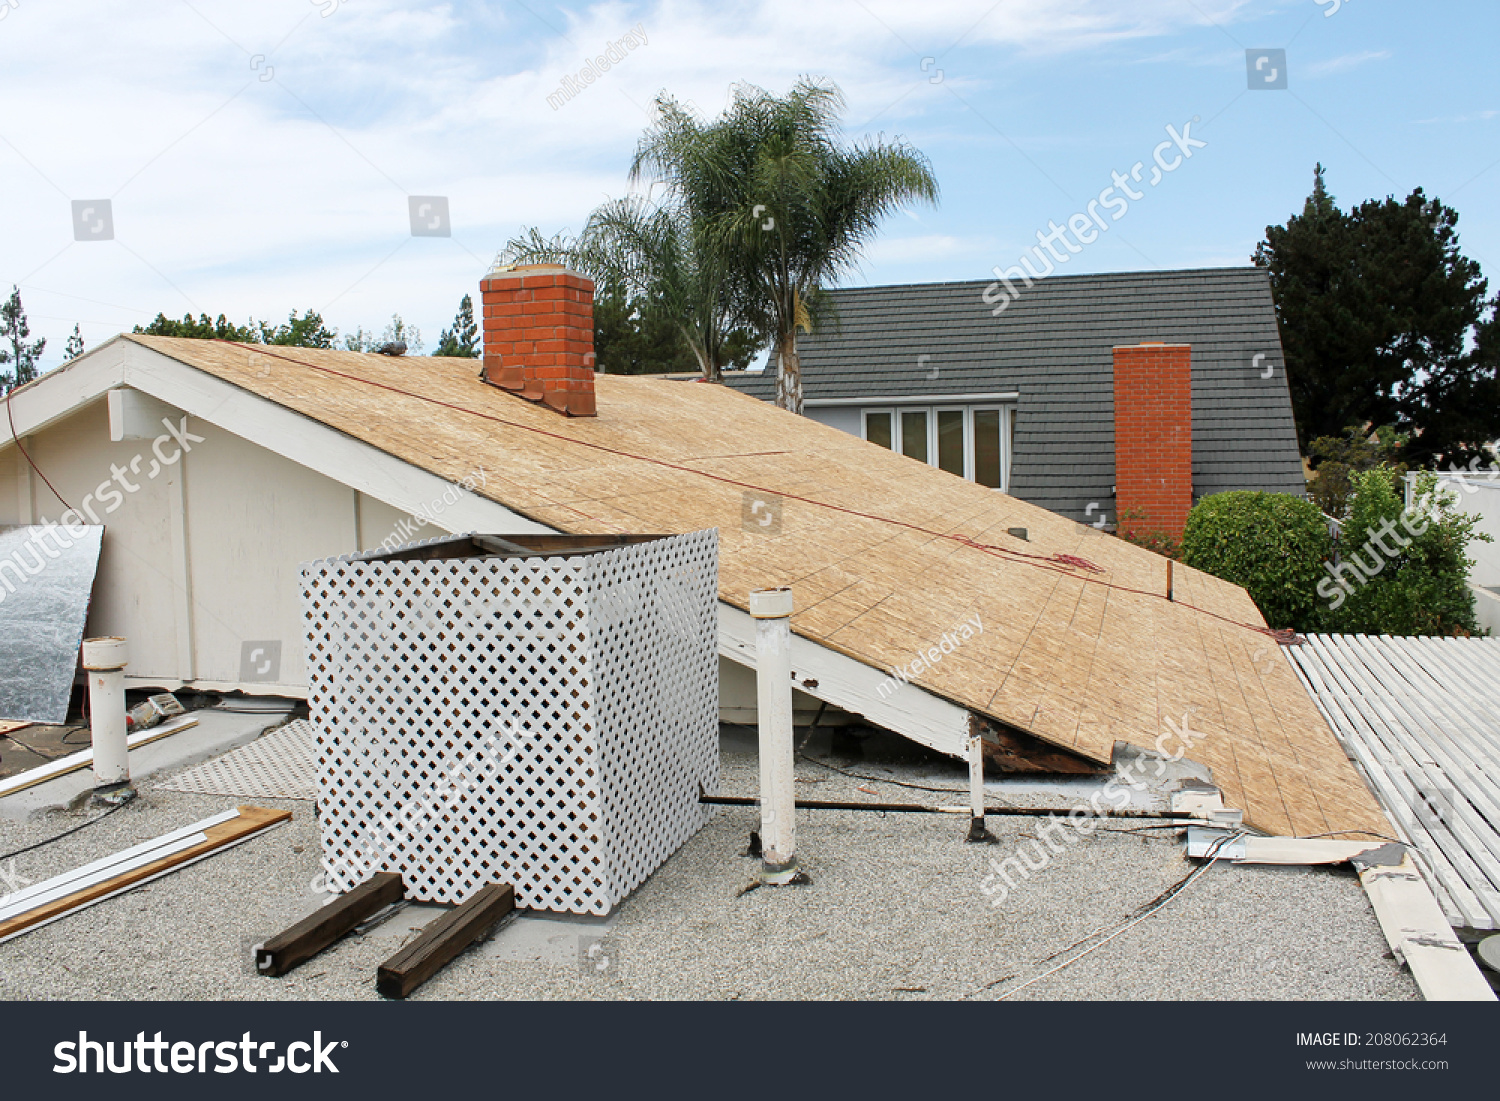 Home roof construction site removal of old roof and for Home roofing options